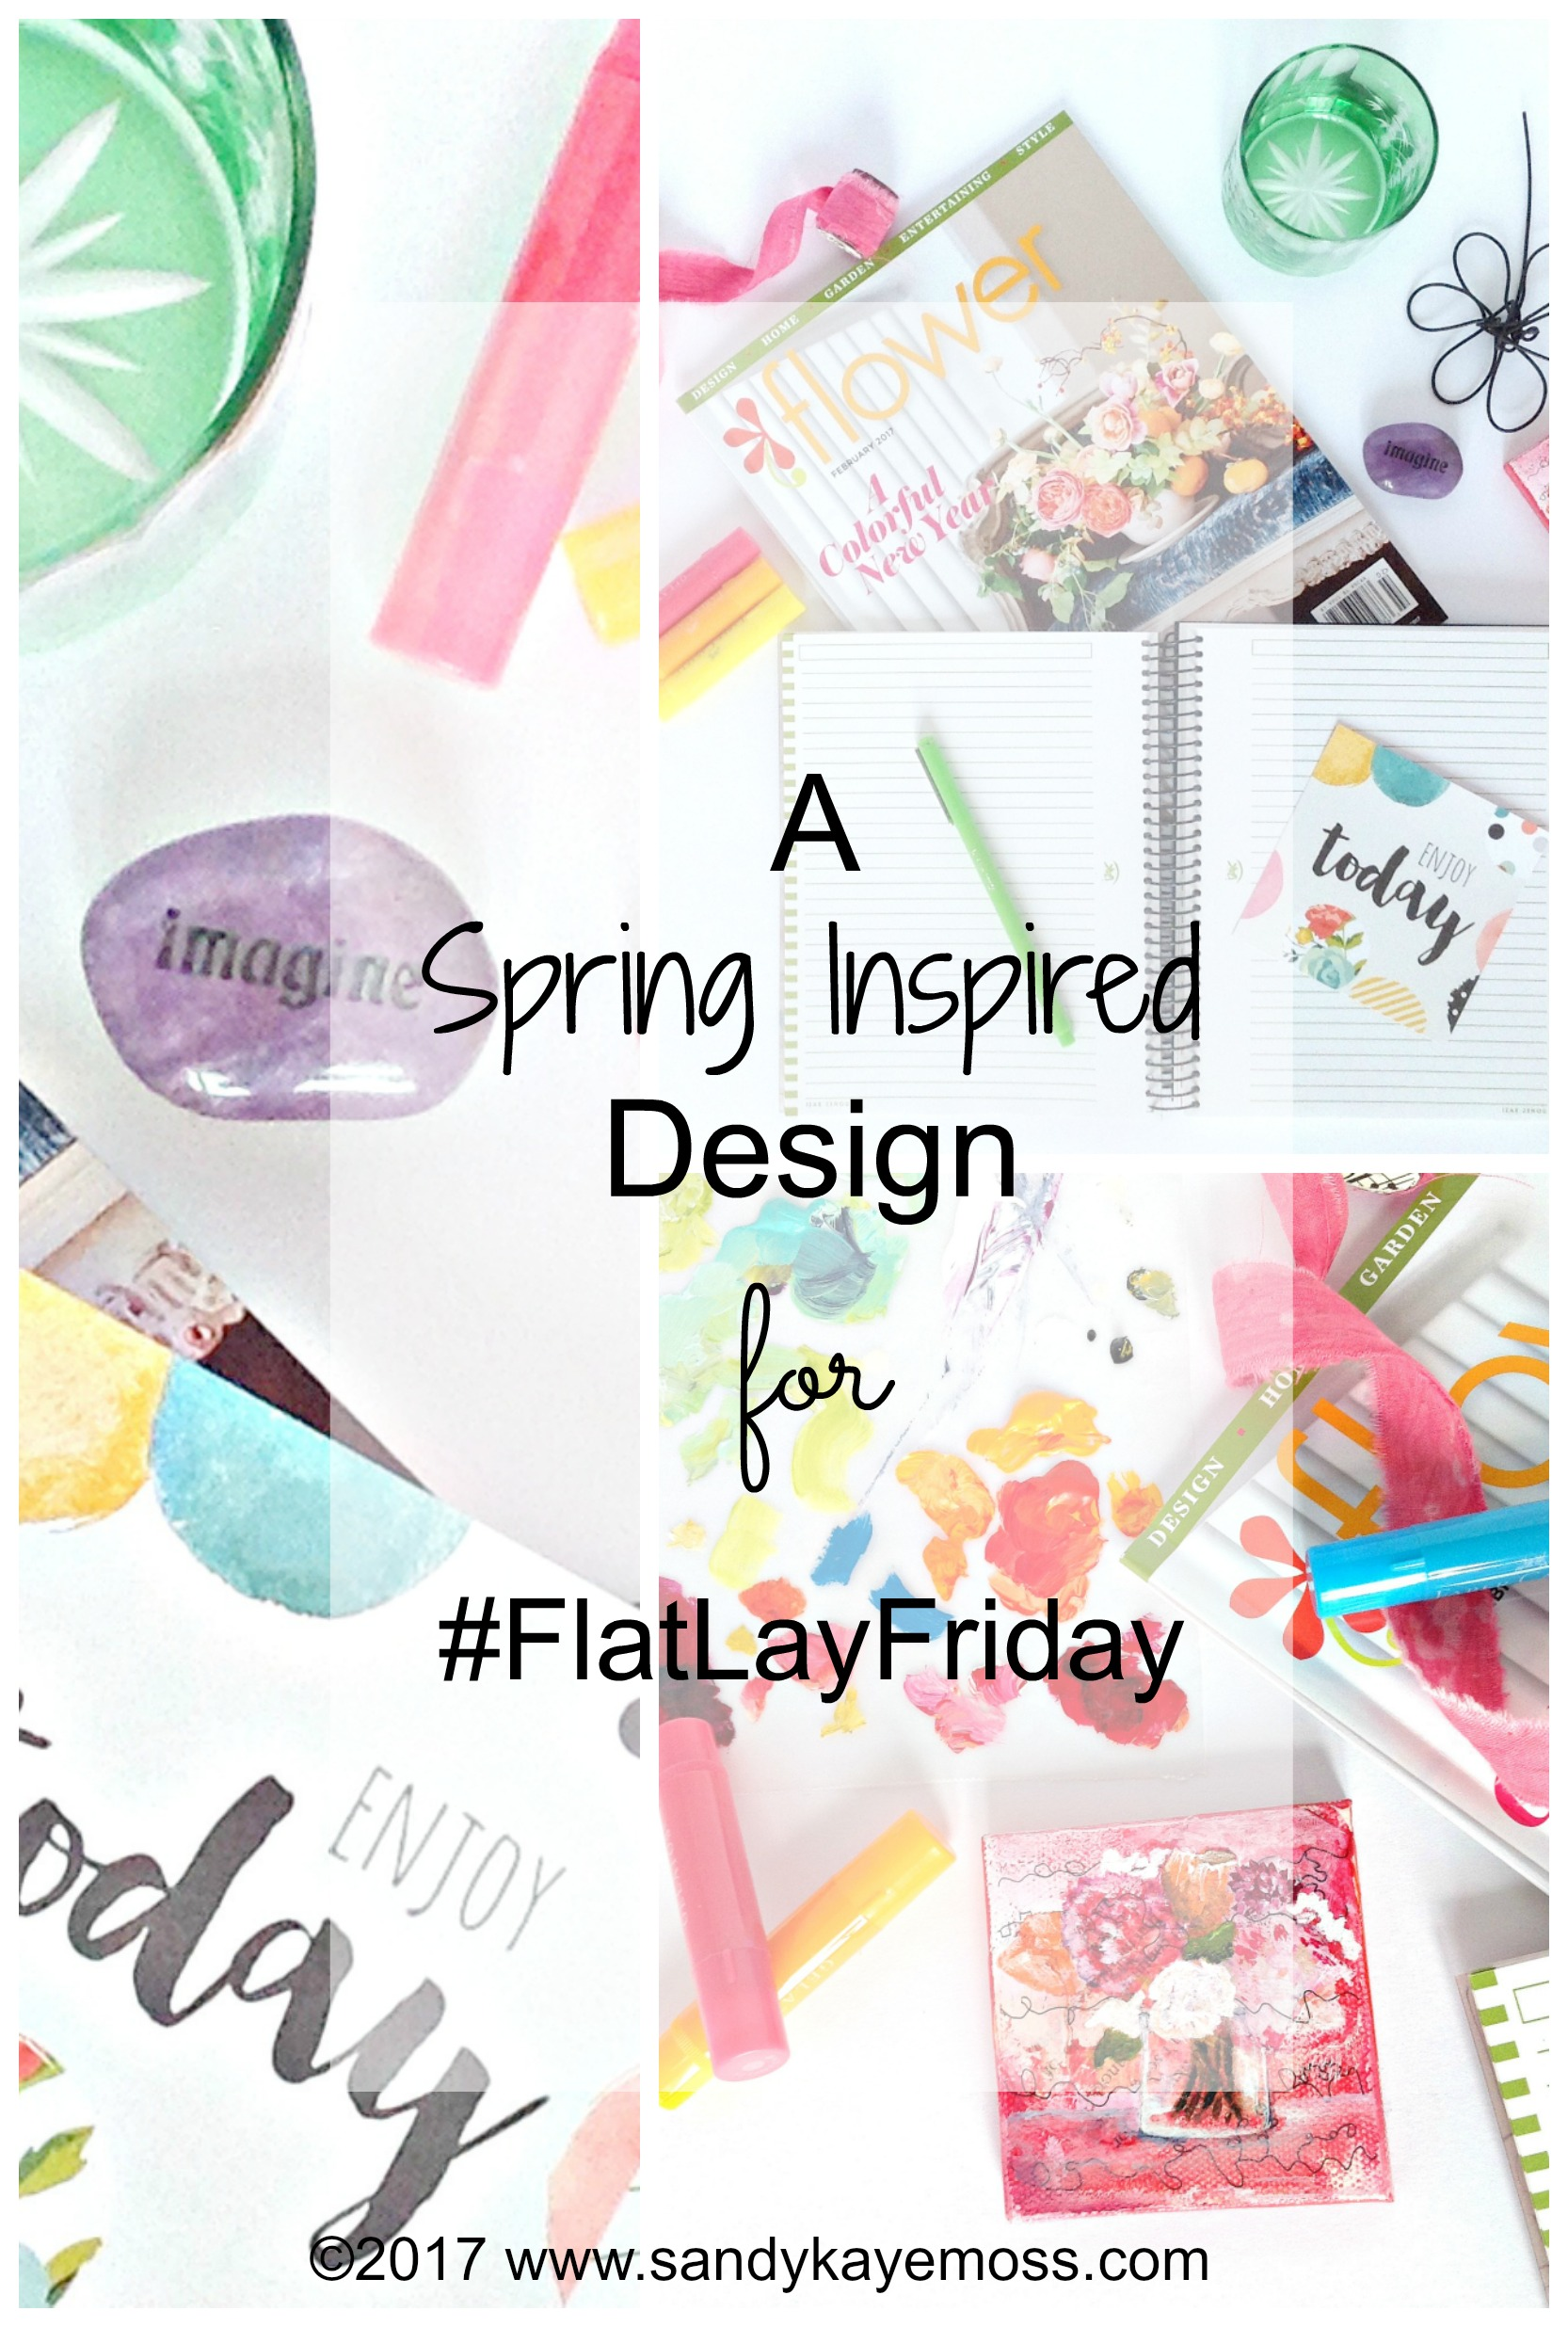 This Spring inspired Flat Lay walked me into a real truth. No matter where we are in the journey of designing our lives... We have the ability to think of the very best and brightest. Imagine the flowers and enjoy today.